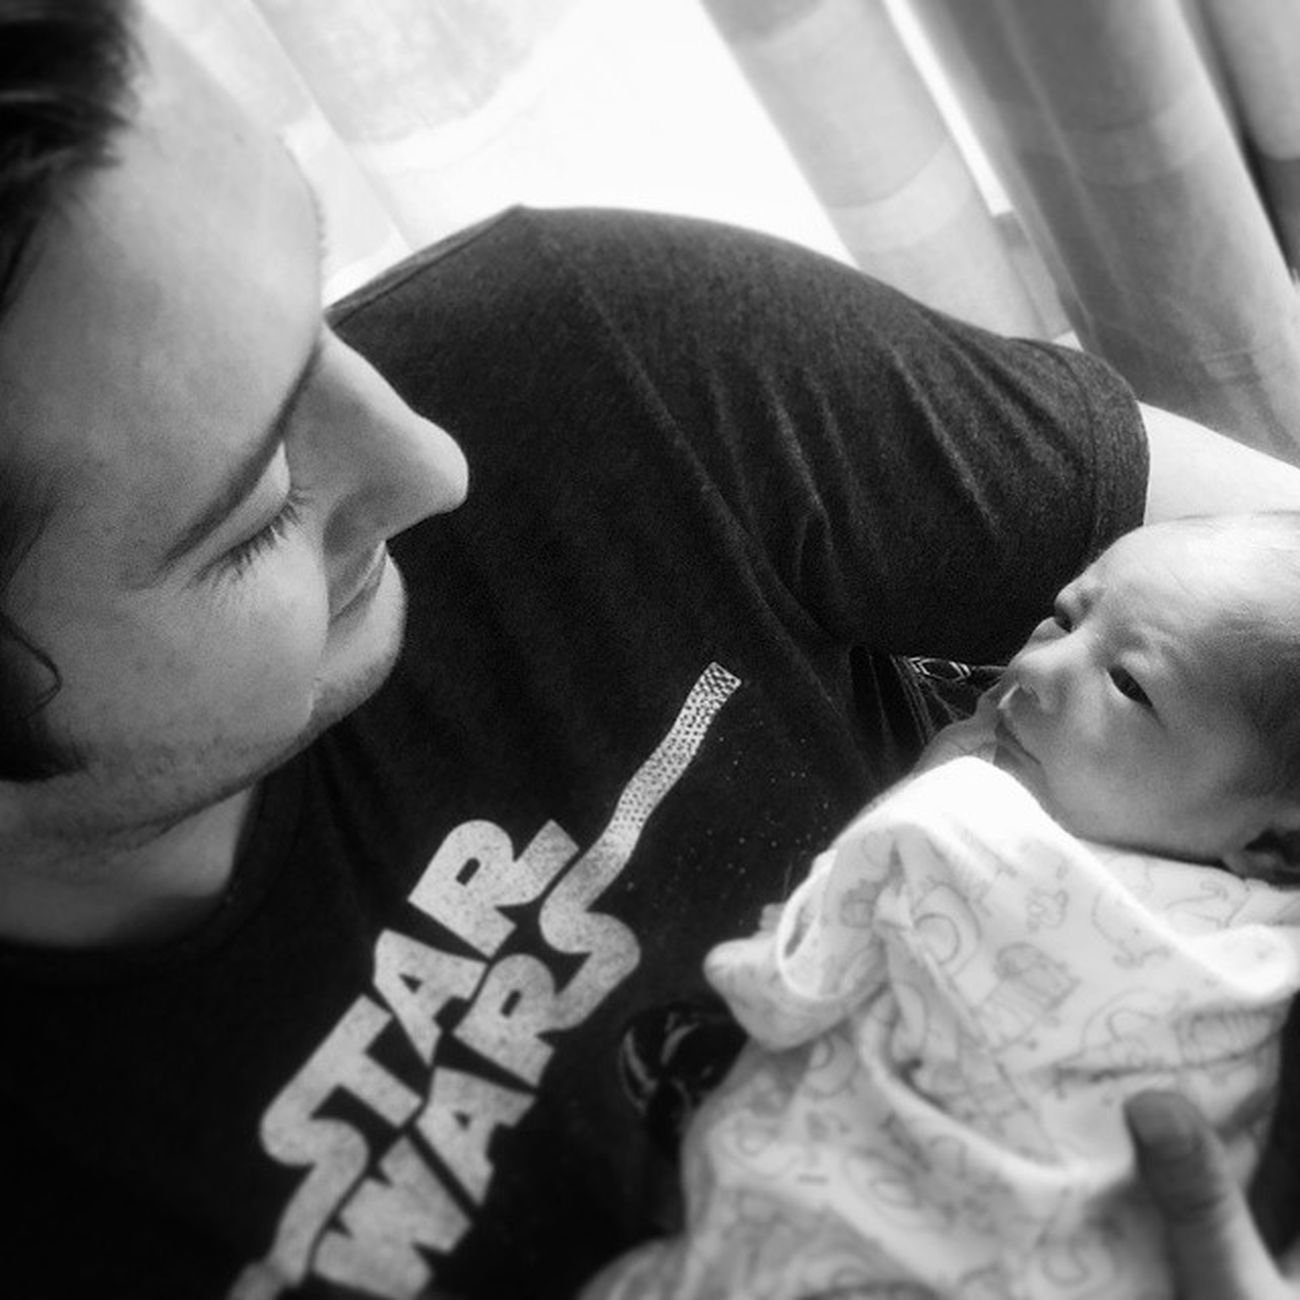 "The force is strong in my family. I have it...my sister has it....you have that power too. Meet the new member of the family my perfect little nephew, Jackson Kendrick Pennell, who was welcomed into the world on 13/05/15 weighing 6lb. This was our first conversation; ""Welcome to Earth my young padawan. I'll show you the way of the force, you will become a Jedi, I promise"". For our ally is the Force, and a powerful ally it is. Life creates it, makes it grow. Its energy surrounds us and binds us. Luminous beings are we, not this crude matter. You must feel the Force around you; here, between you, me, the tree, the rock, everywhere"". Proudbrother ProudUncle Padawan Starwars"